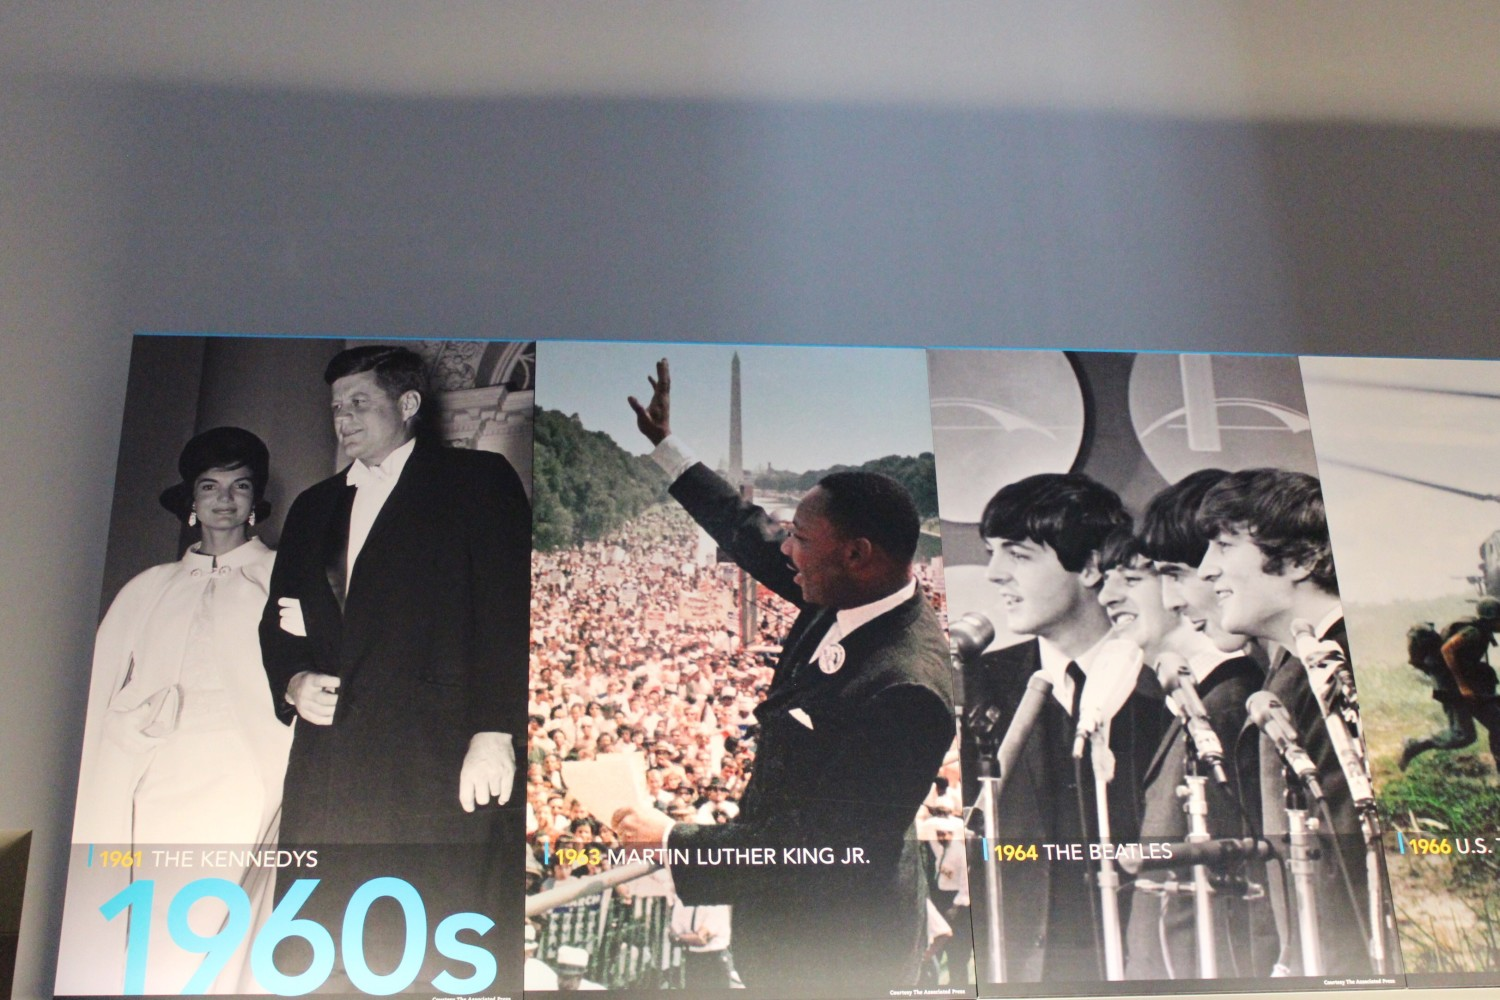 Newseum History Through the Years